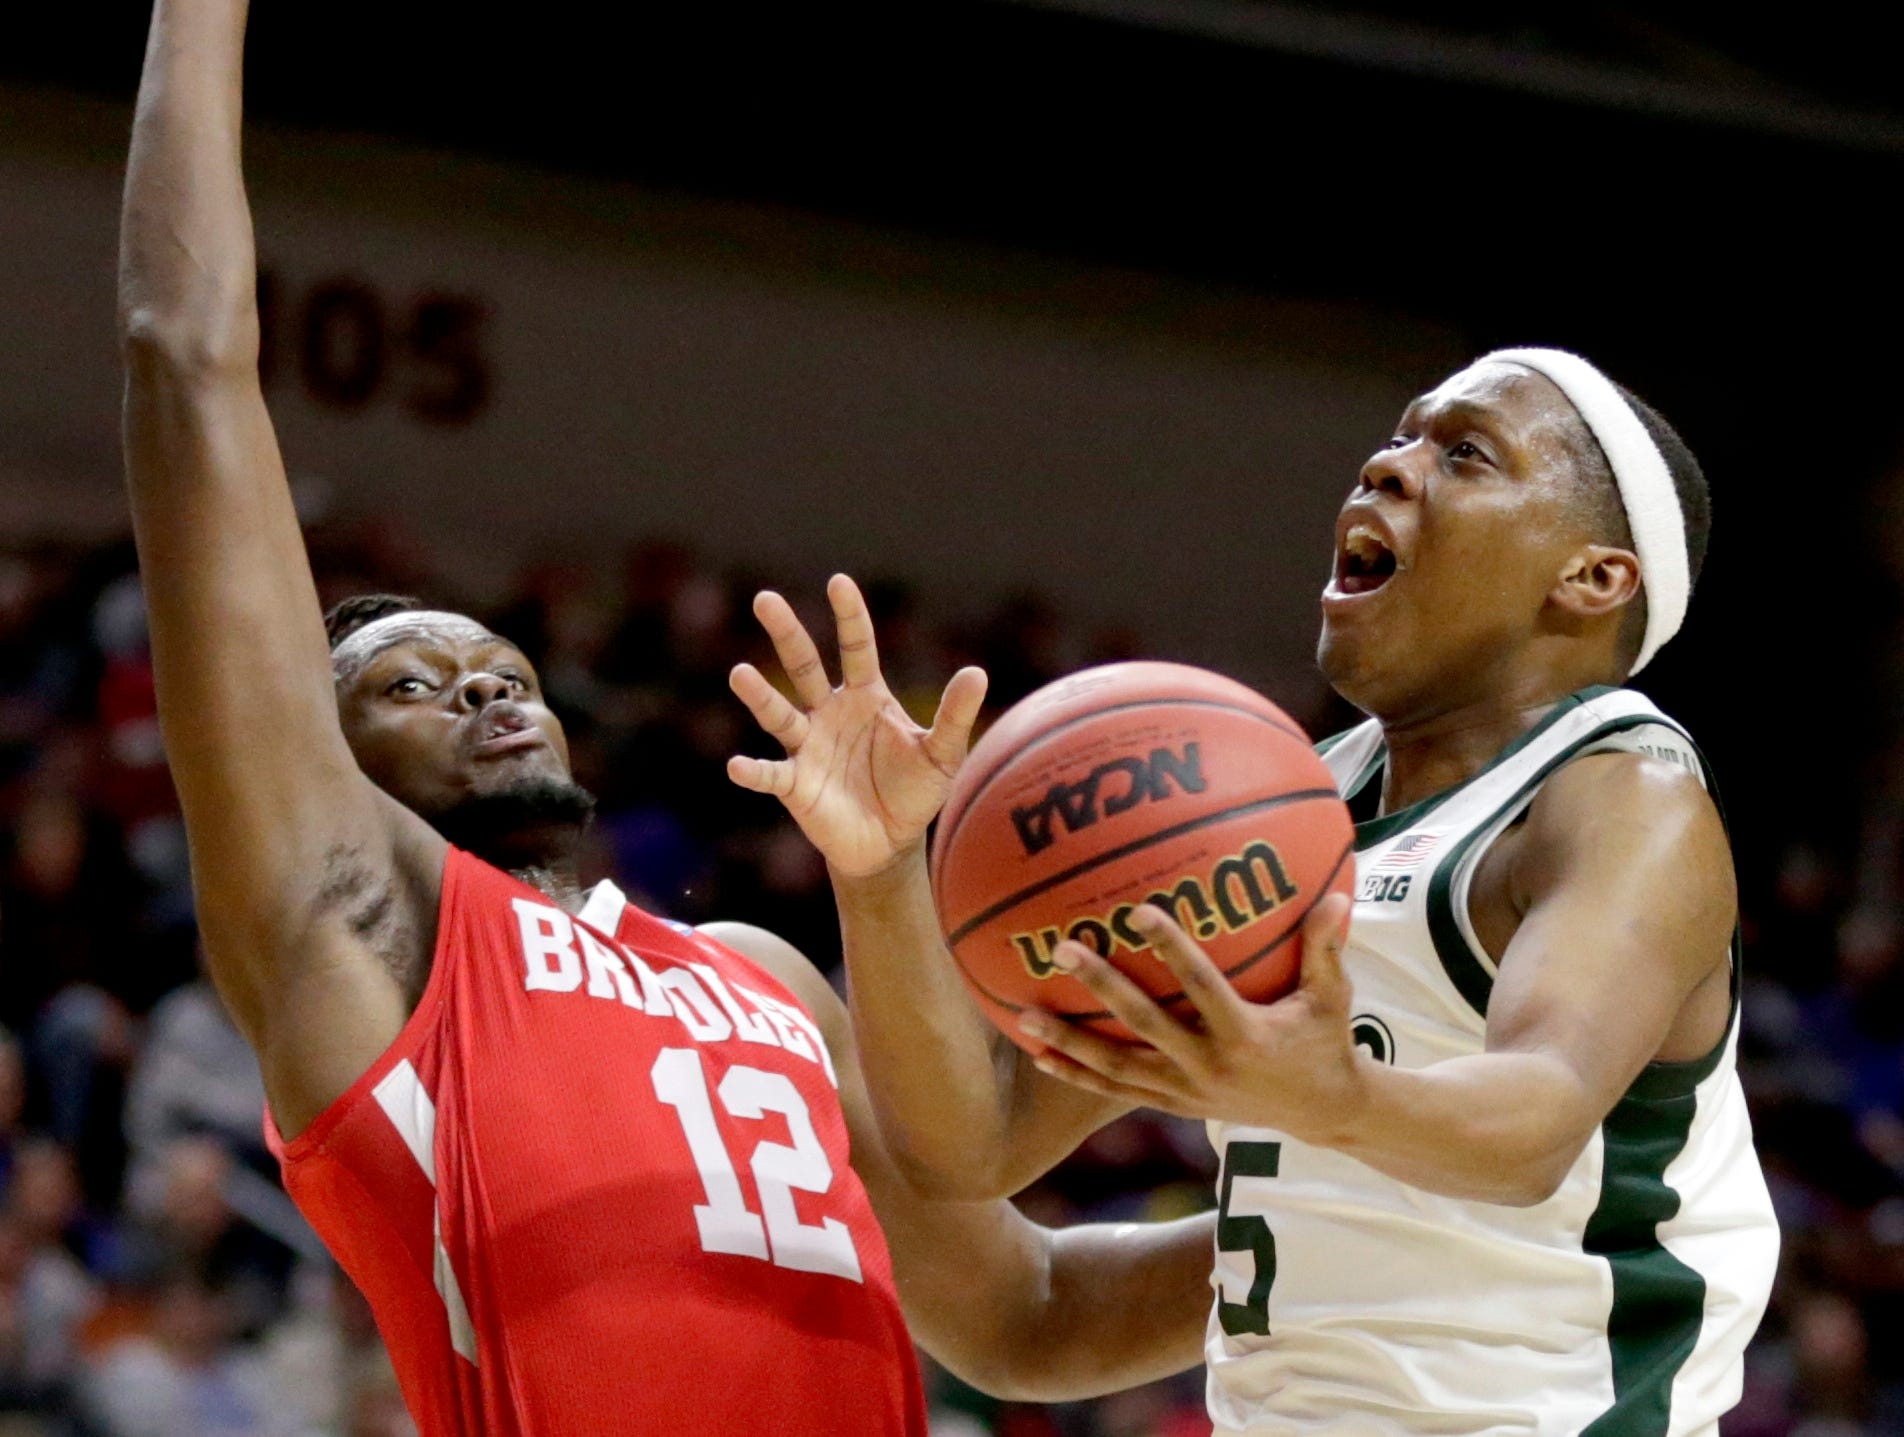 Michigan State's Cassius Winston (5) goes to the basket against Bradley's Koch Bar (12) during the second half of a first round men's college basketball game in the NCAA Tournament in Des Moines, Iowa, Thursday, March 21, 2019.